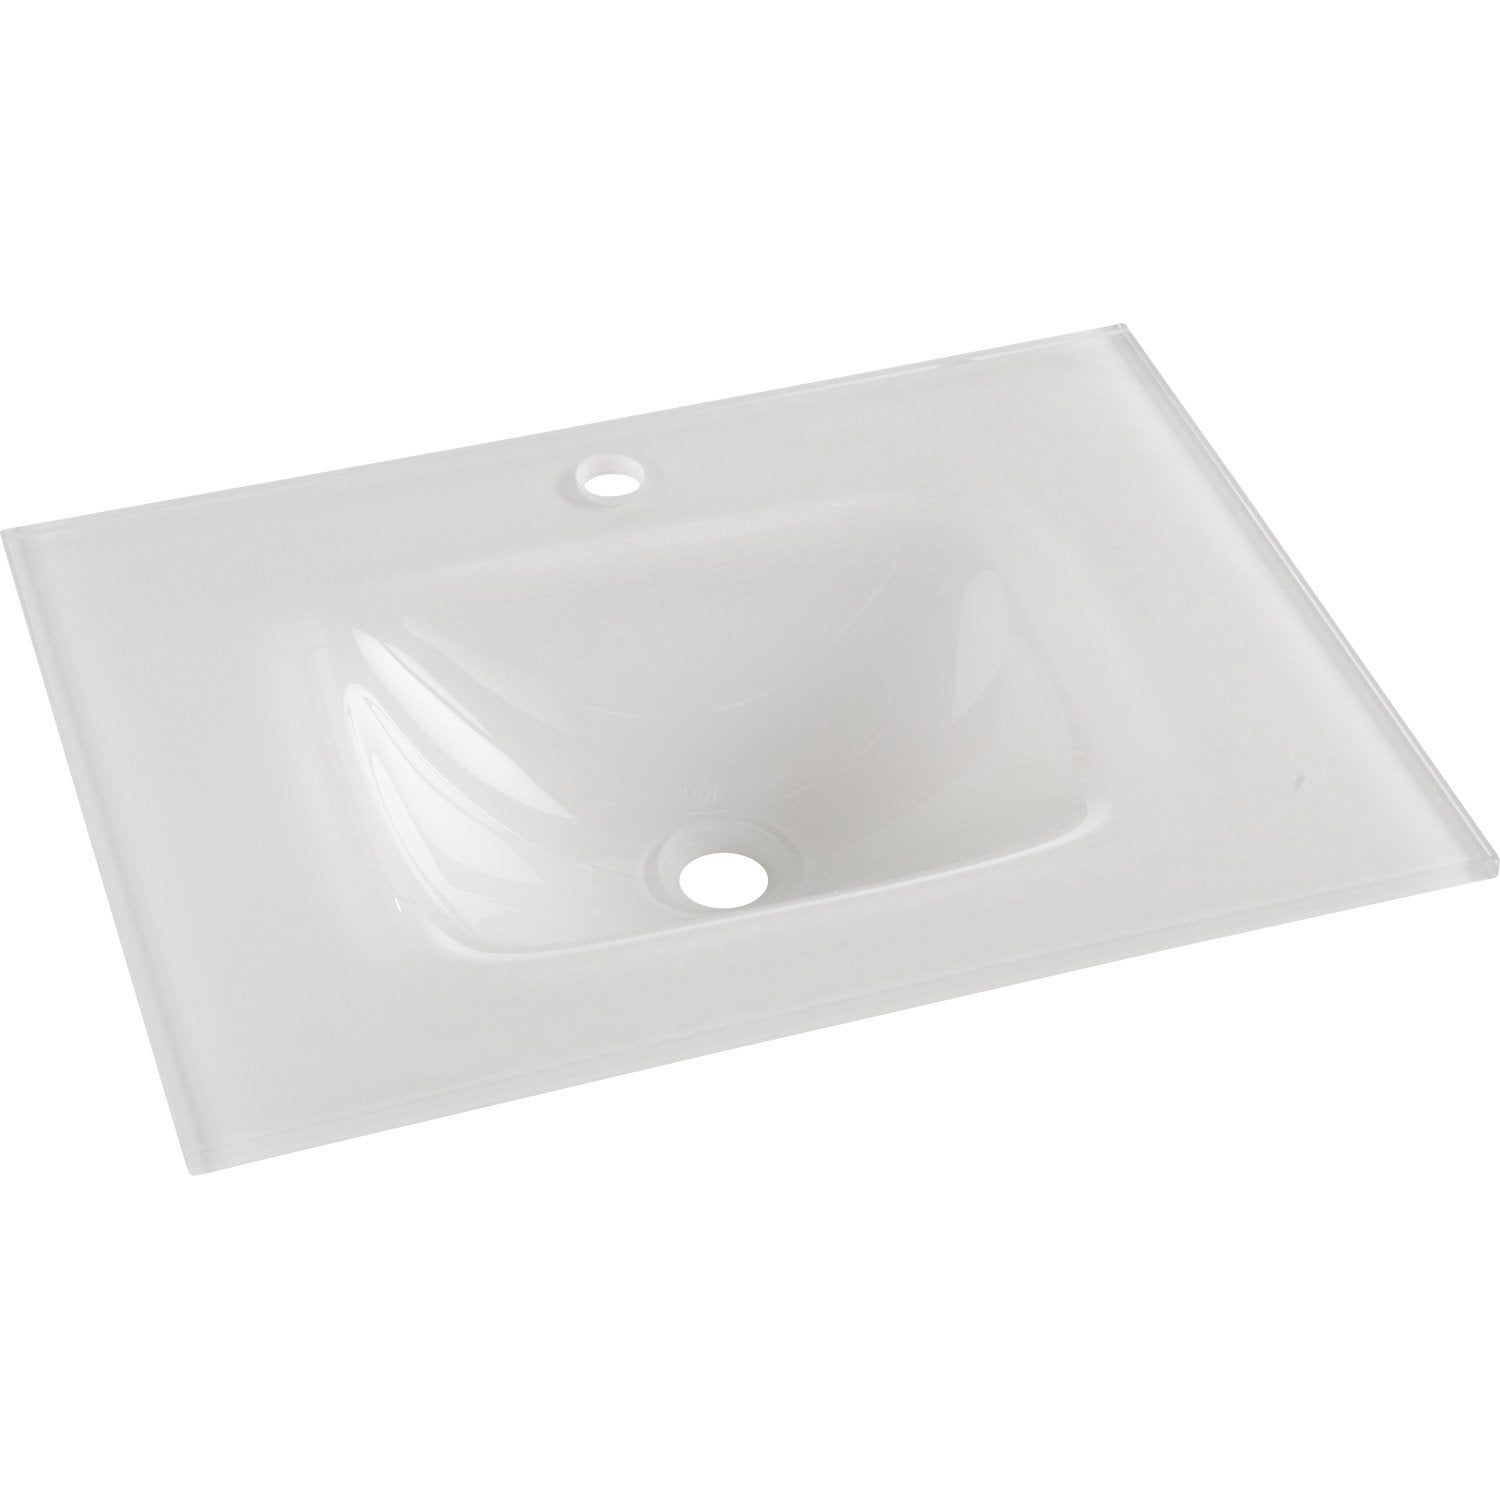 Plan vasque simple opale verre tremp 61 cm leroy merlin - Verre trempe leroy merlin ...